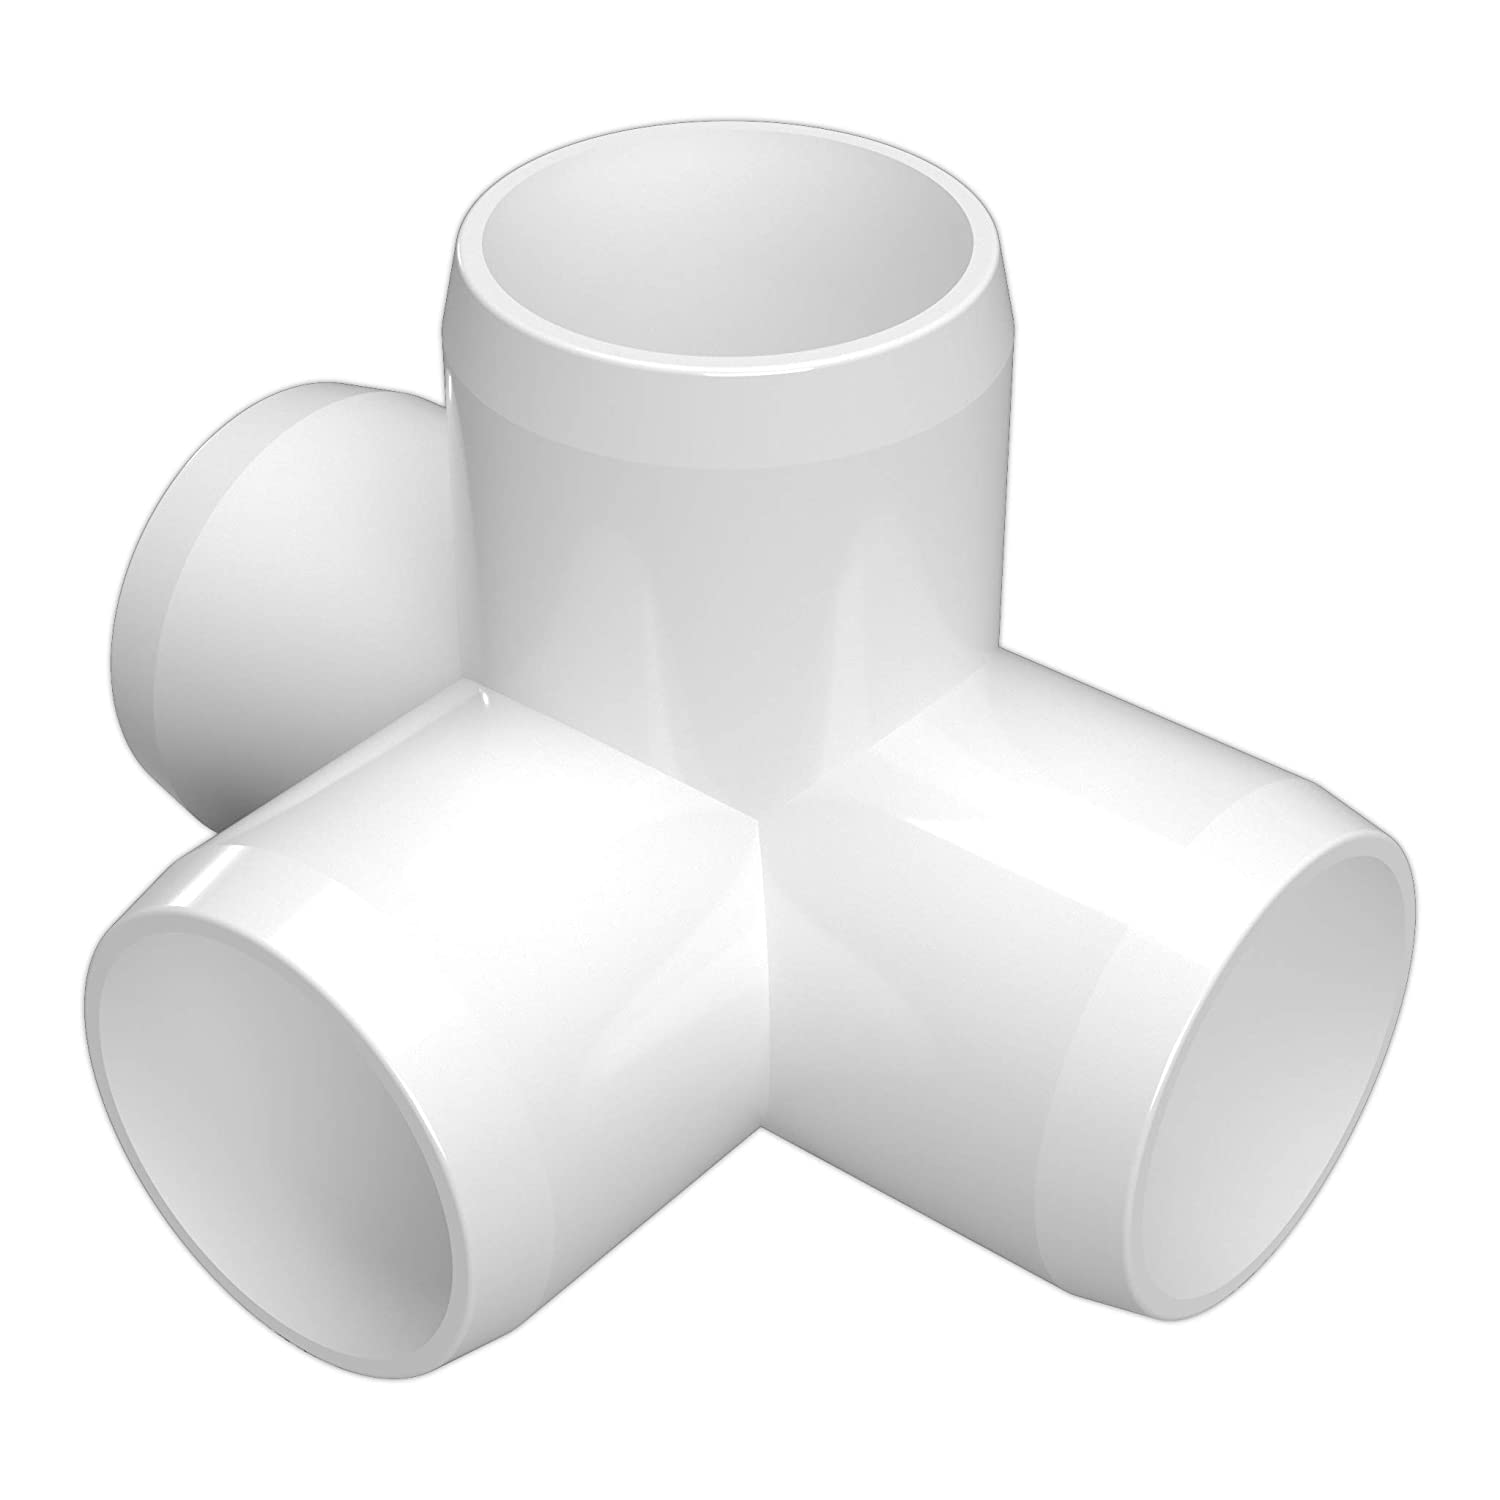 "FORMUFIT F0344WT-WH-8 4-Way Tee PVC Fitting, Furniture Grade, 3/4"" Size, White (Pack of 8)"